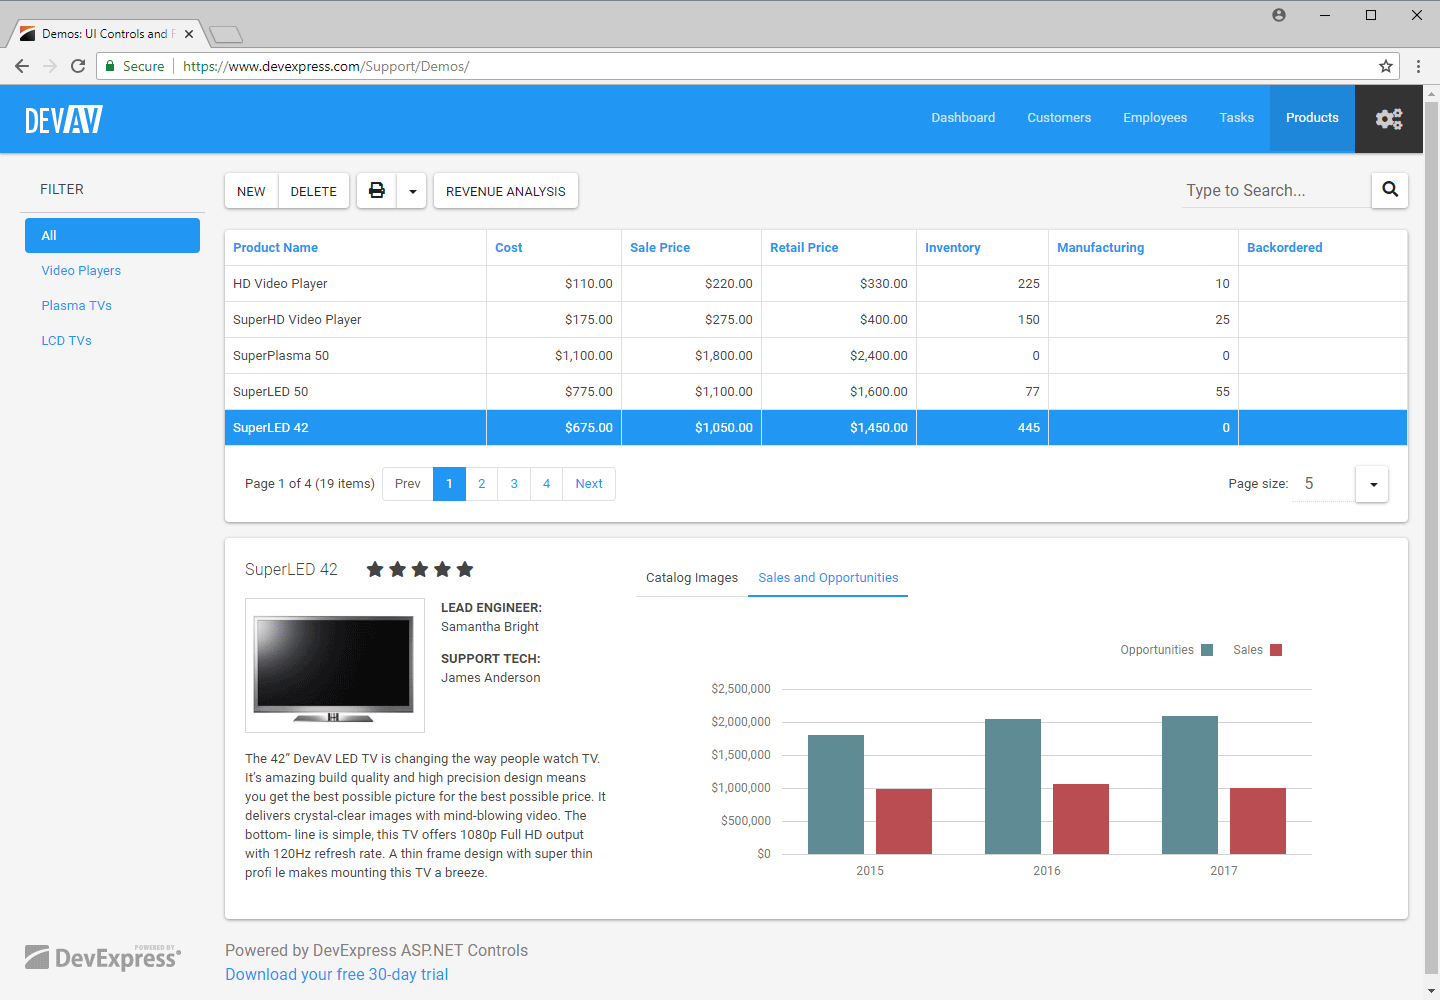 ASP.NET Bootstrap Web Forms App - Product Detail View